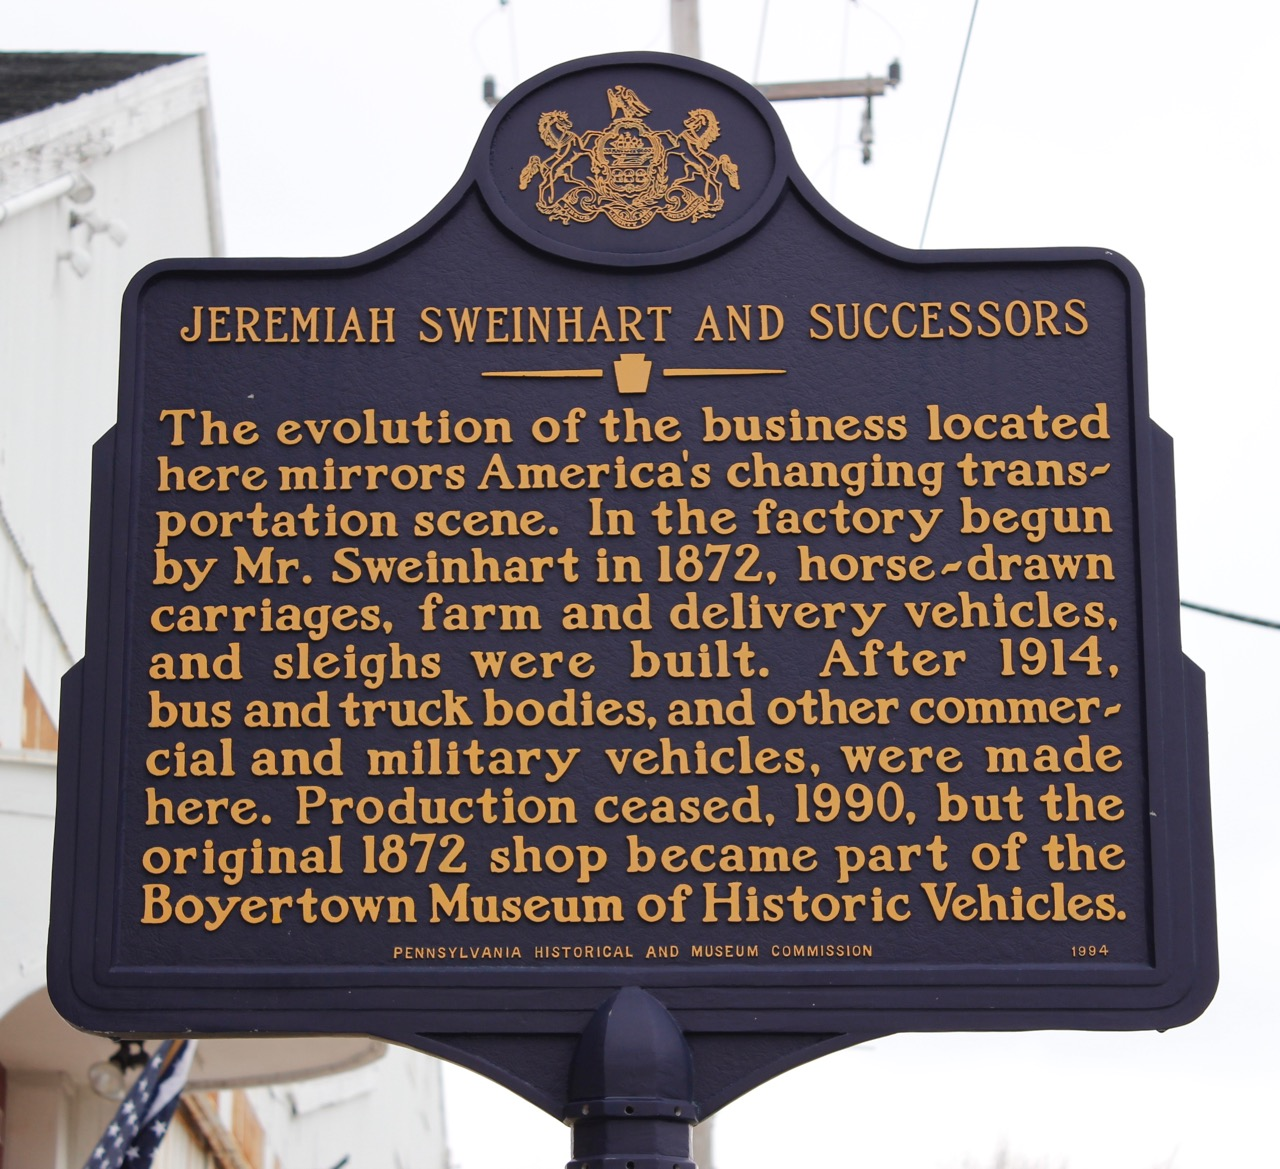 Boyertown Museum of Historic Vehicles - ClassicCars.com Journal